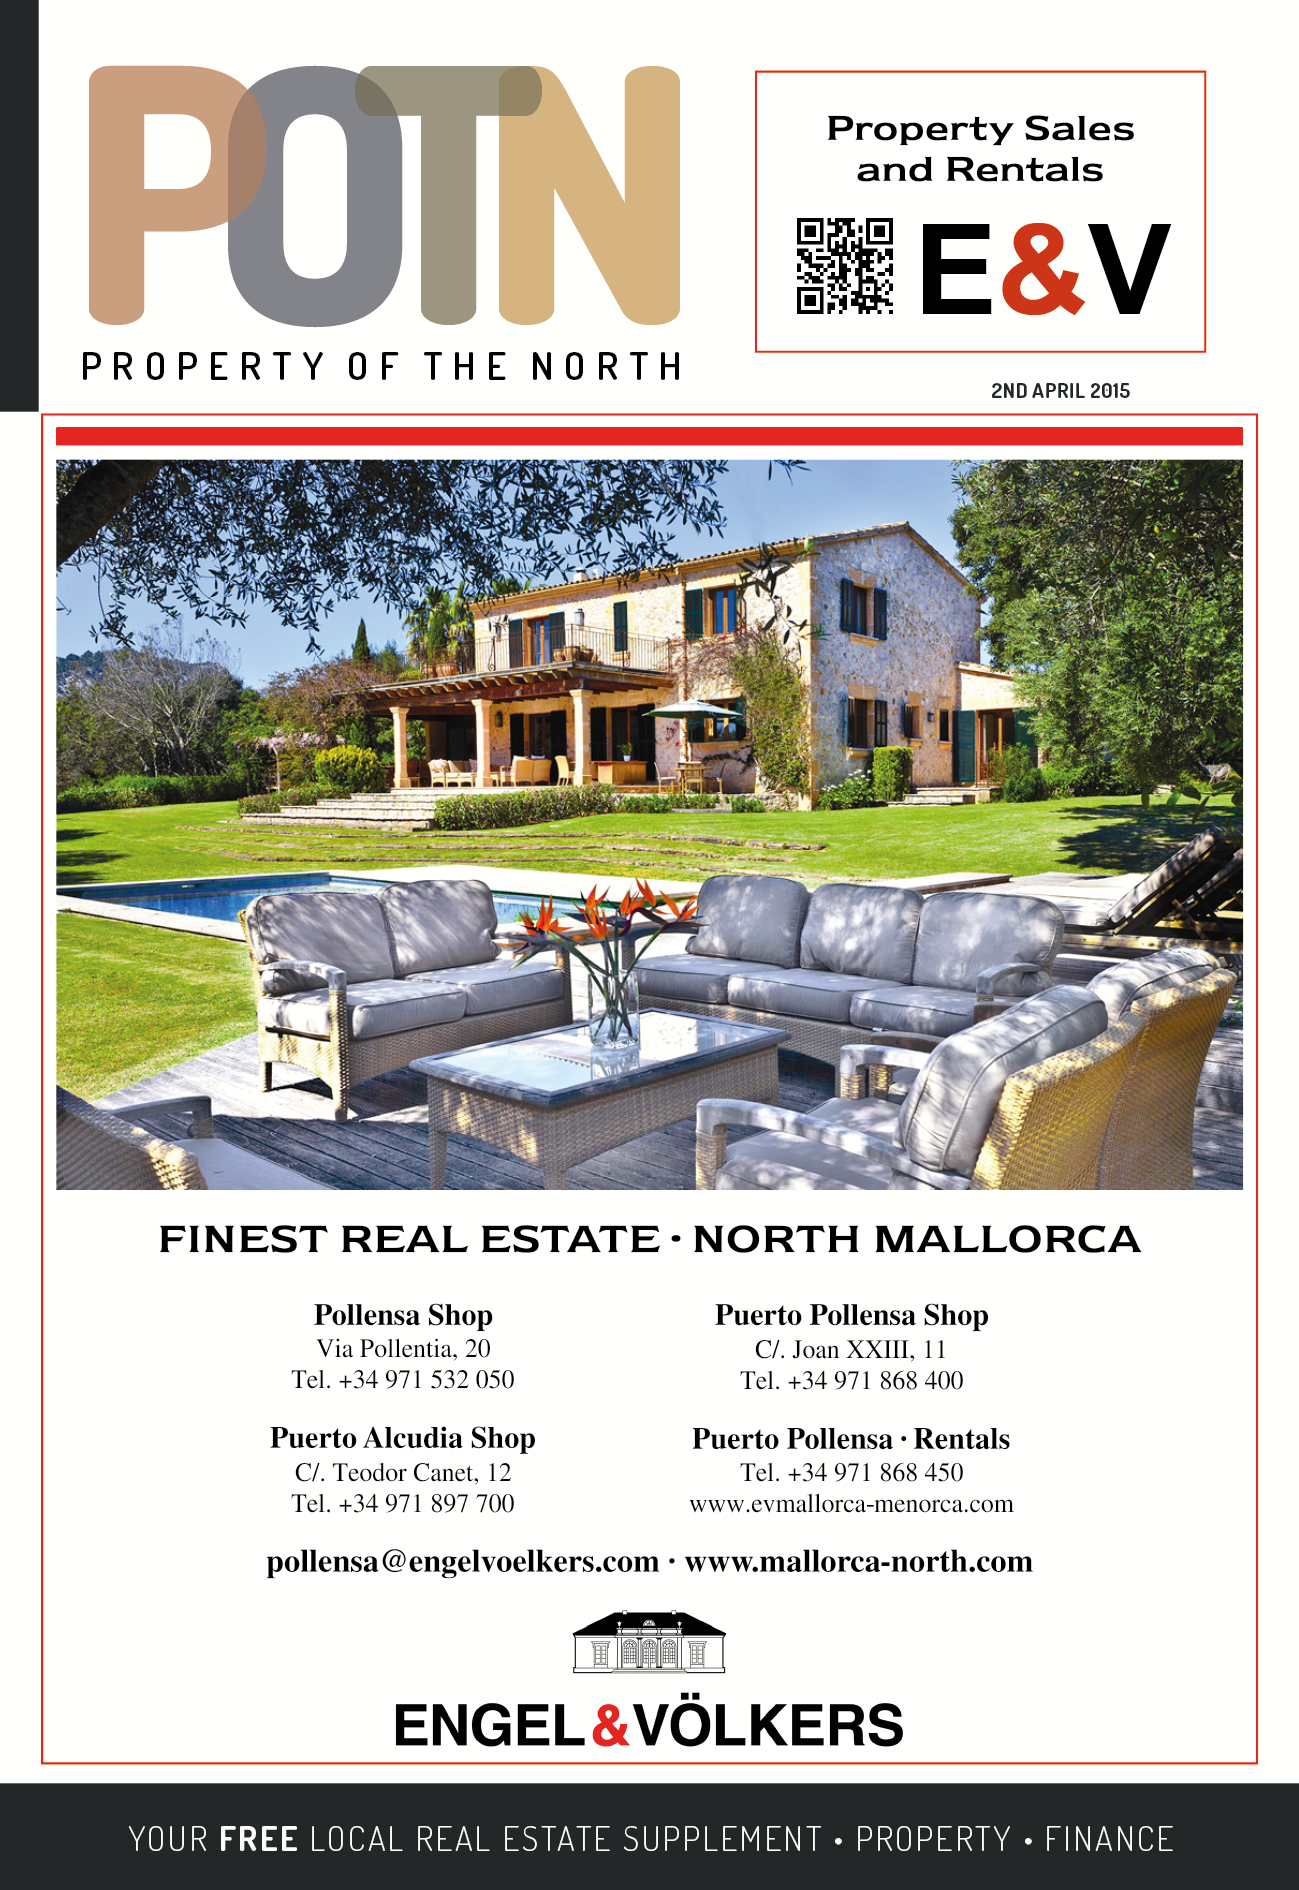 FIRST EVER Property of the North! 2.4.15